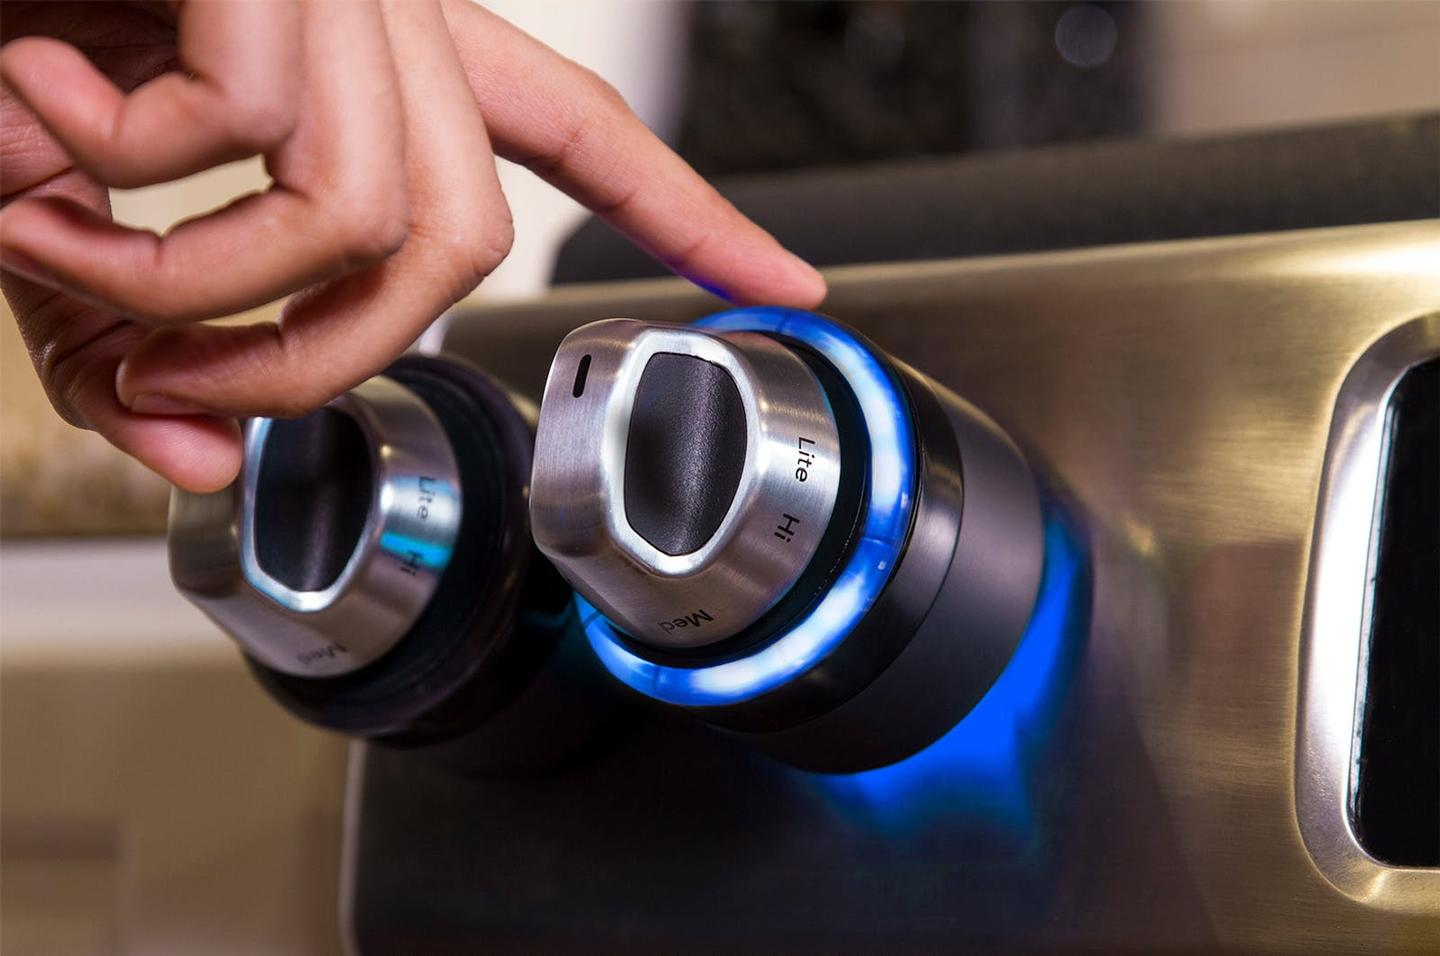 Inirv React knobs are designed to replace existing knobs on your stove